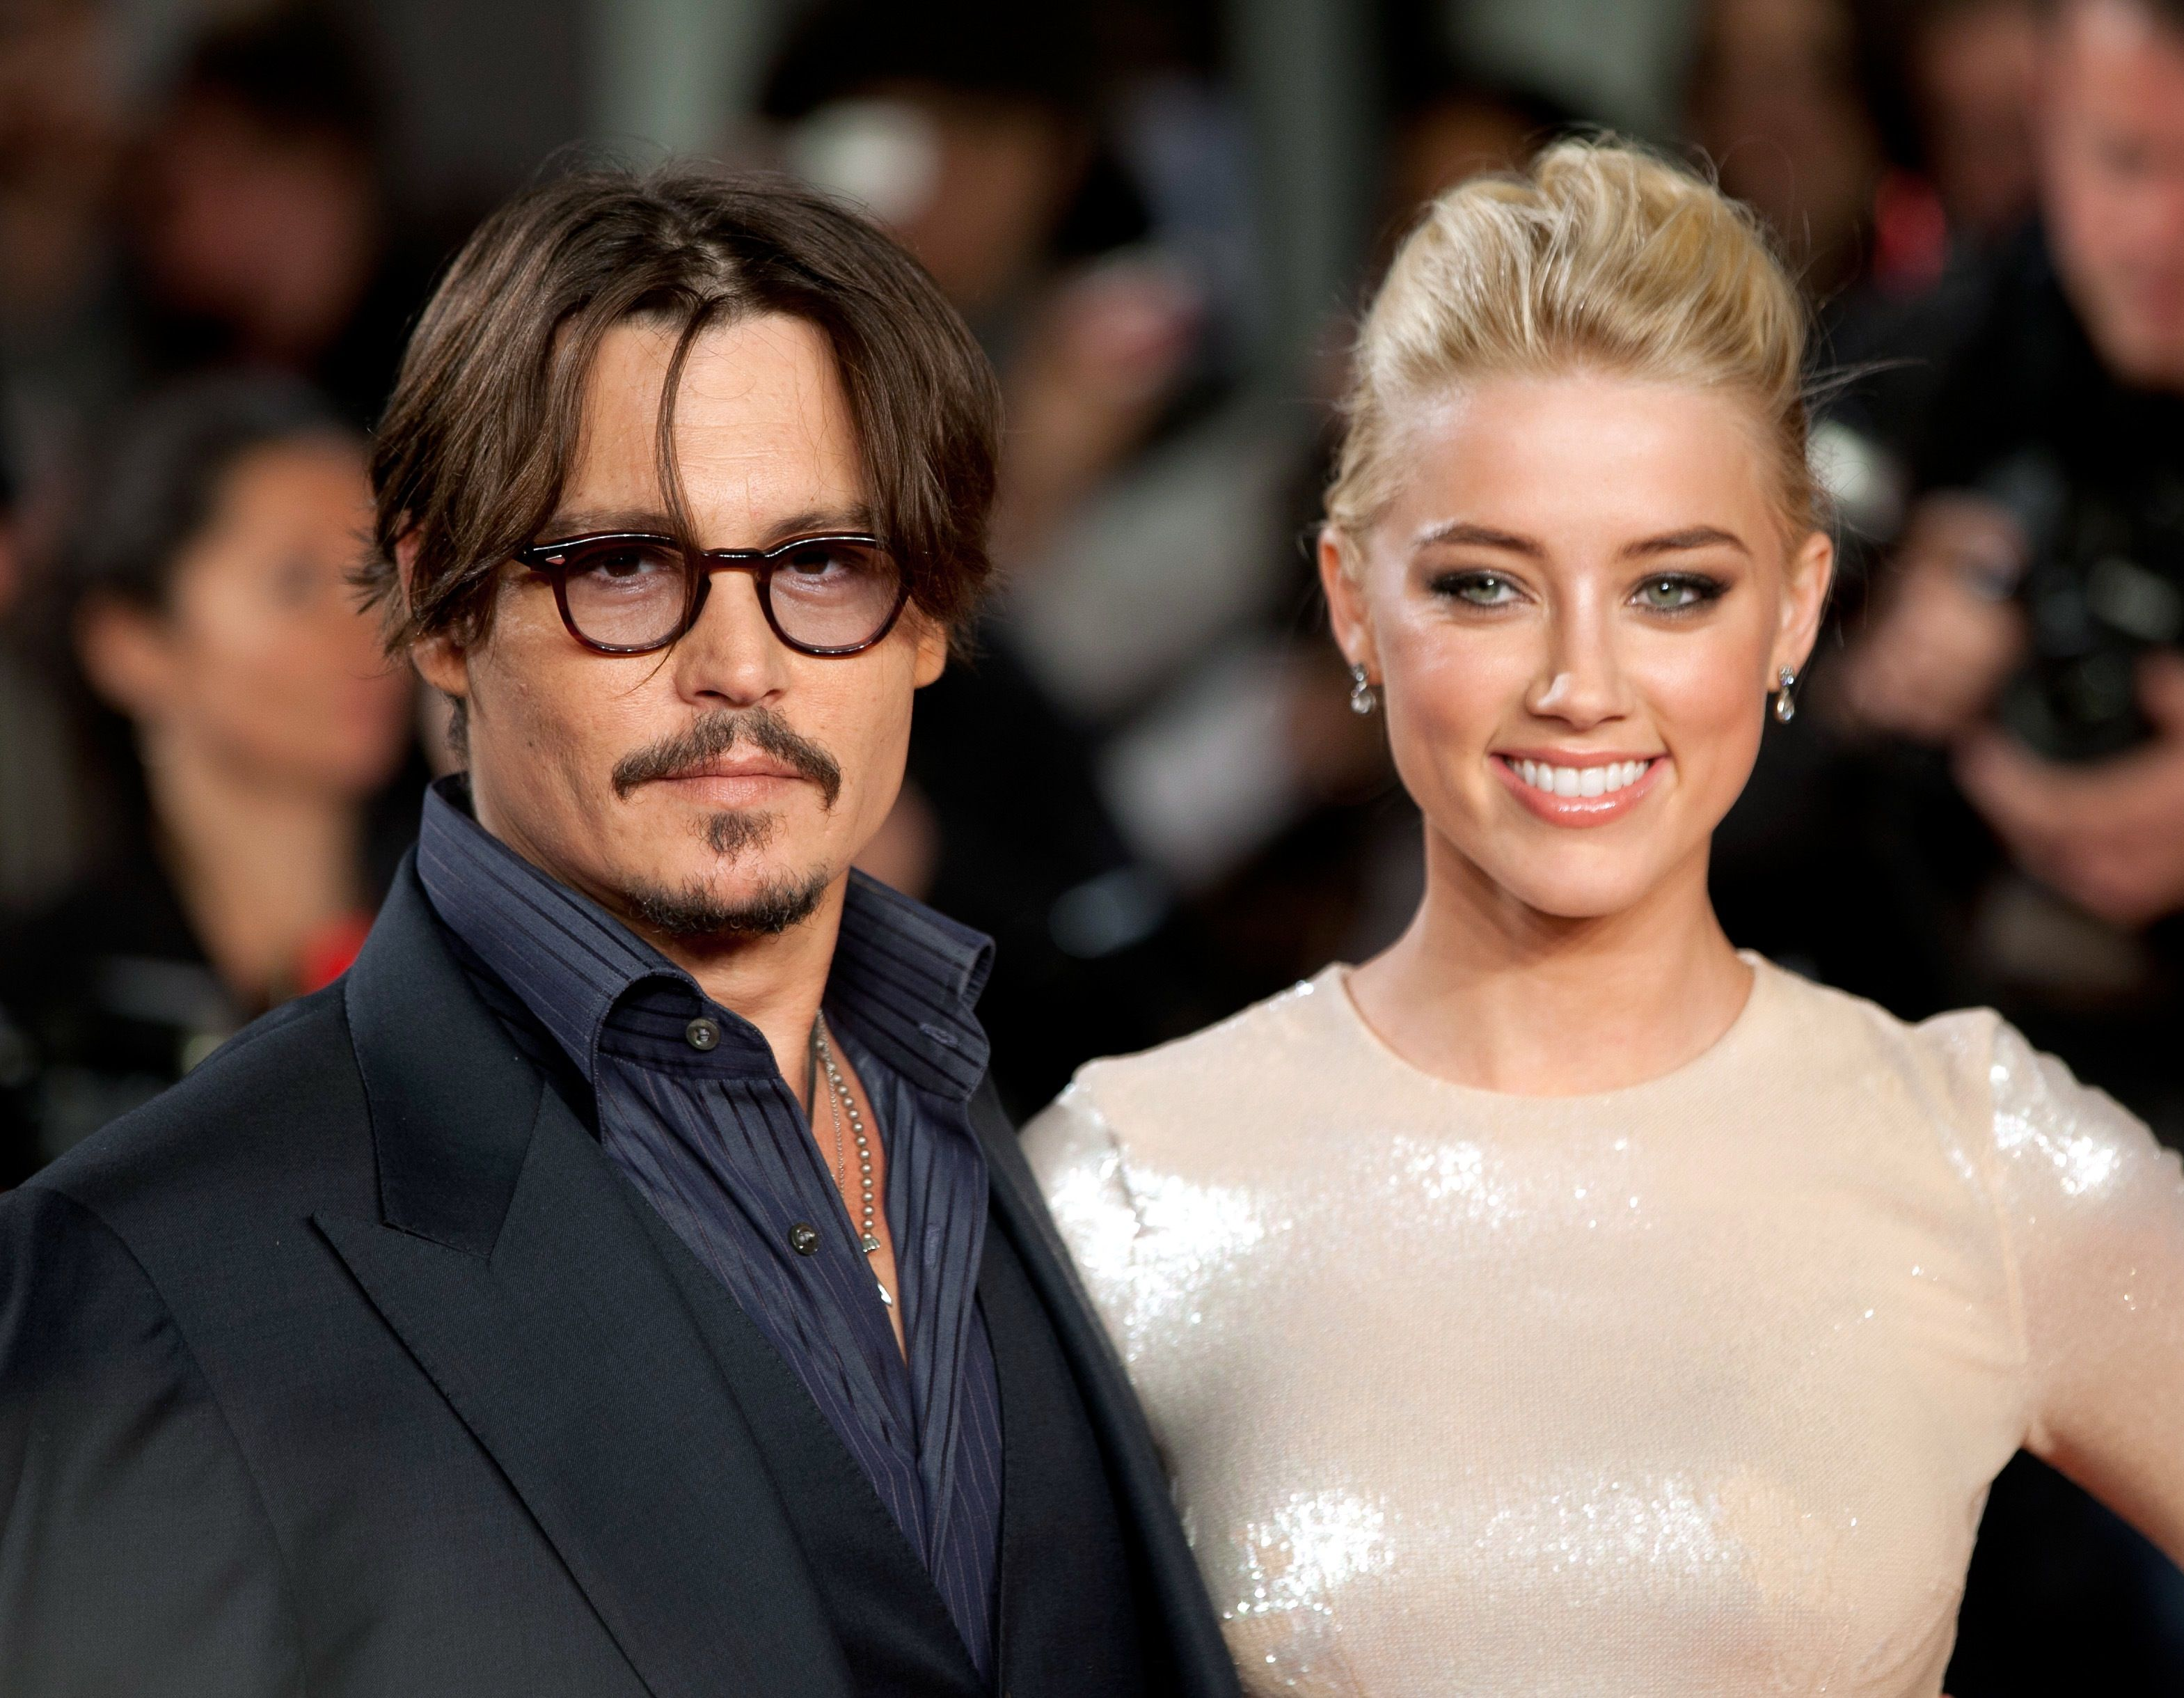 Amber Heard Files For Divorce From Johnny Depp Three Days After His Mother Died Johnny Depp And Amber Amber Heard Johnny Depp Johnny Depp Married